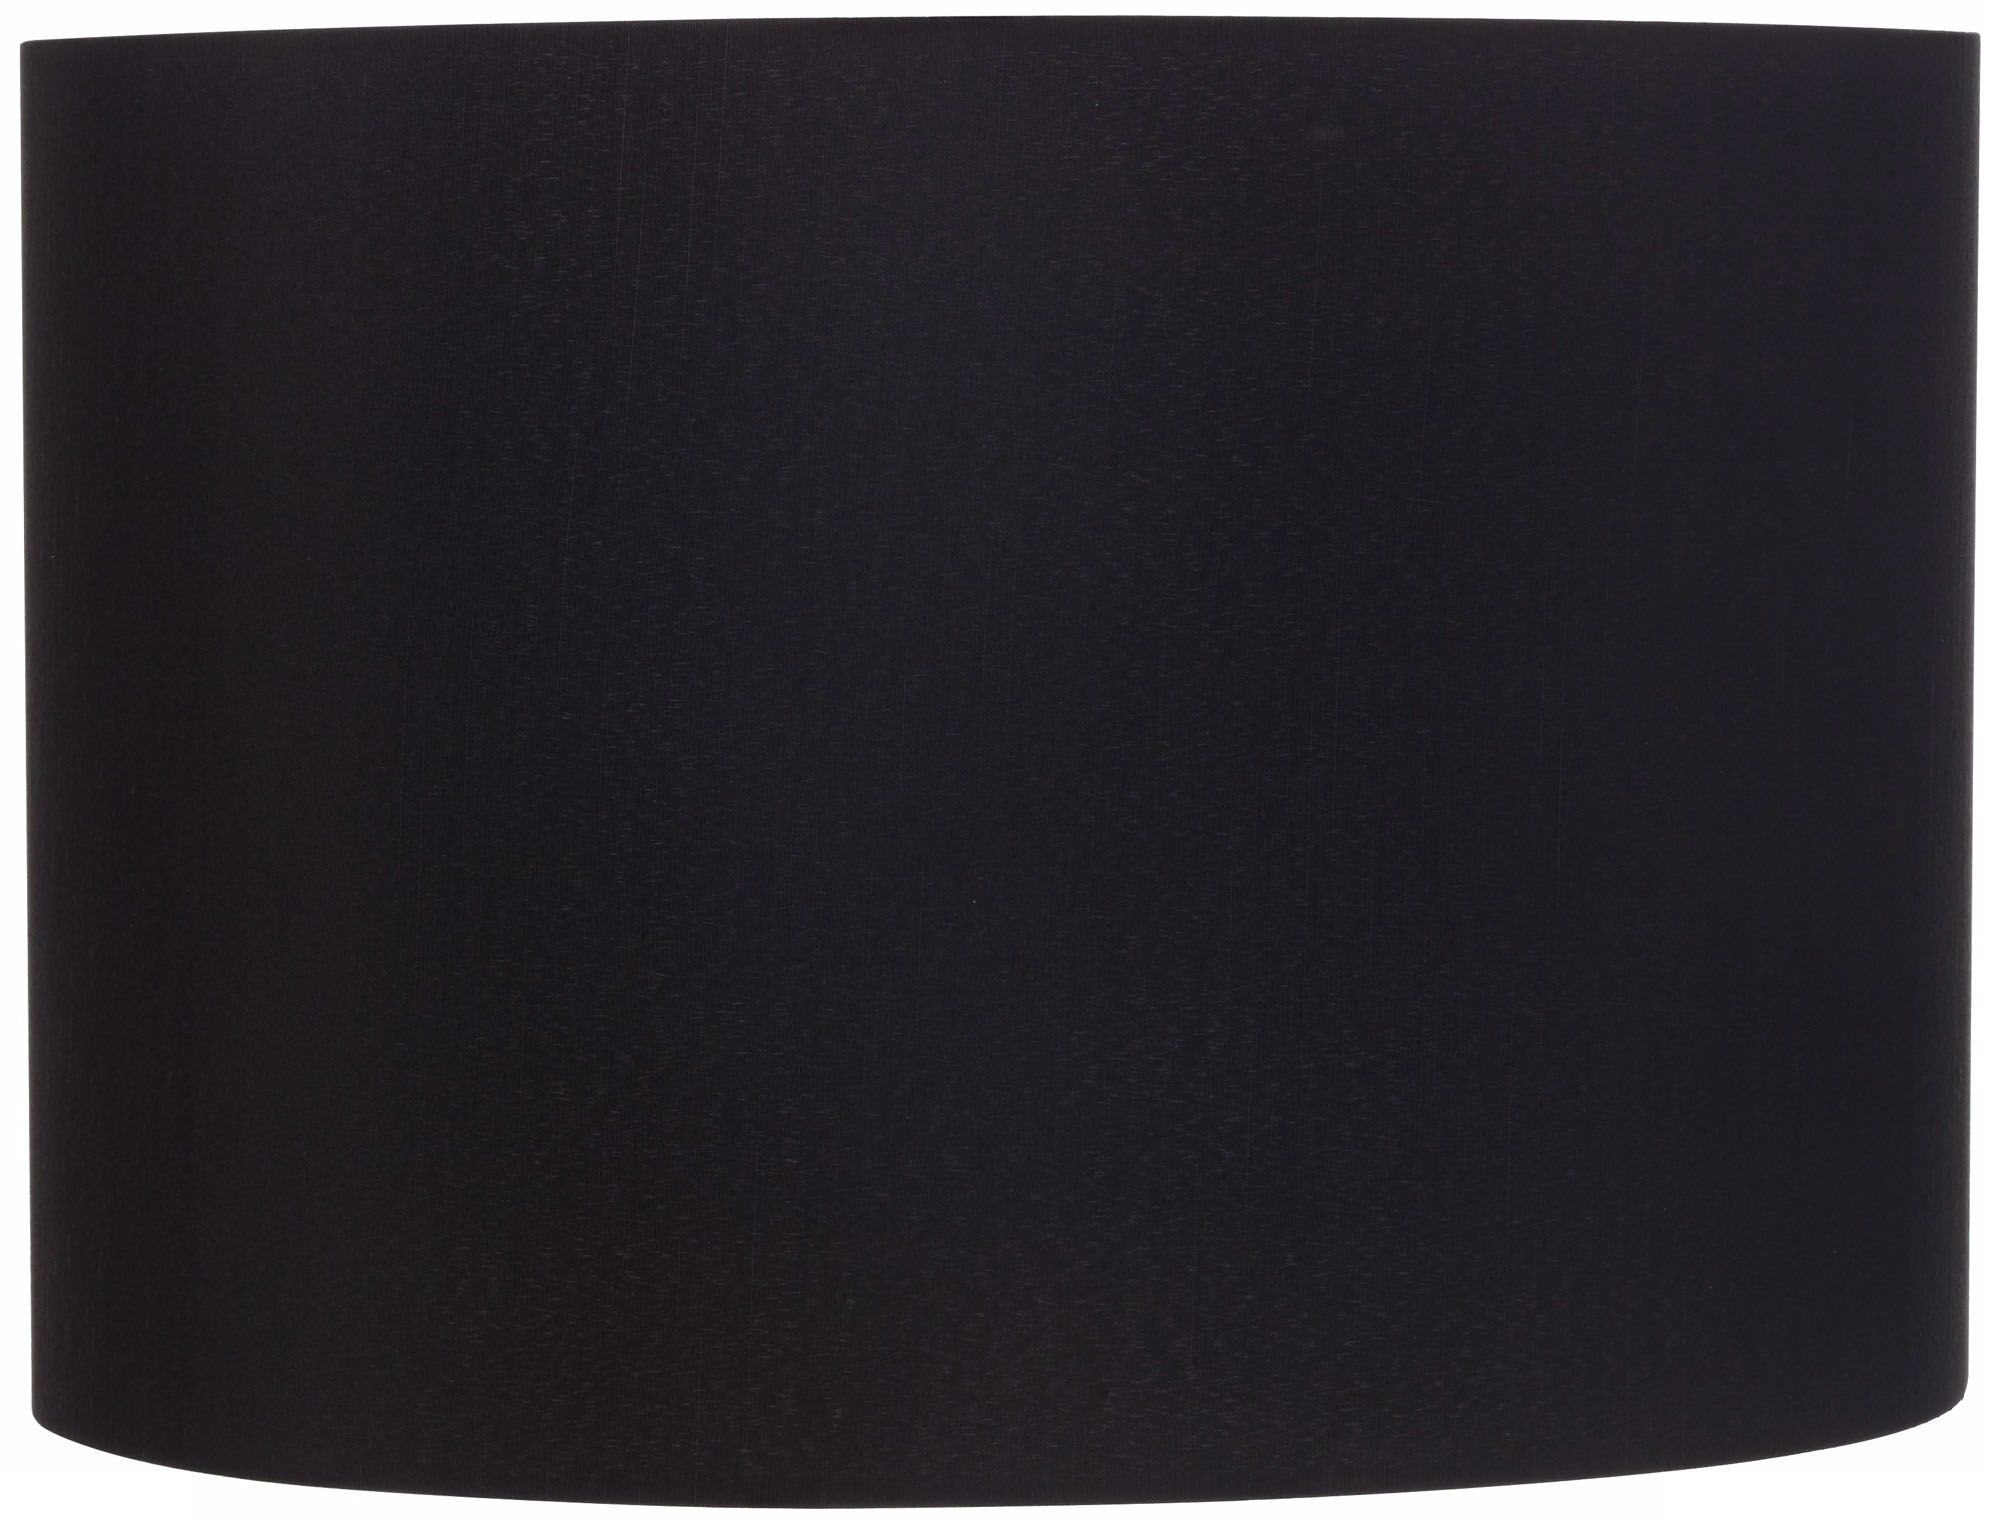 black hardback drum shade 16x16x11 spider - Drum Shade